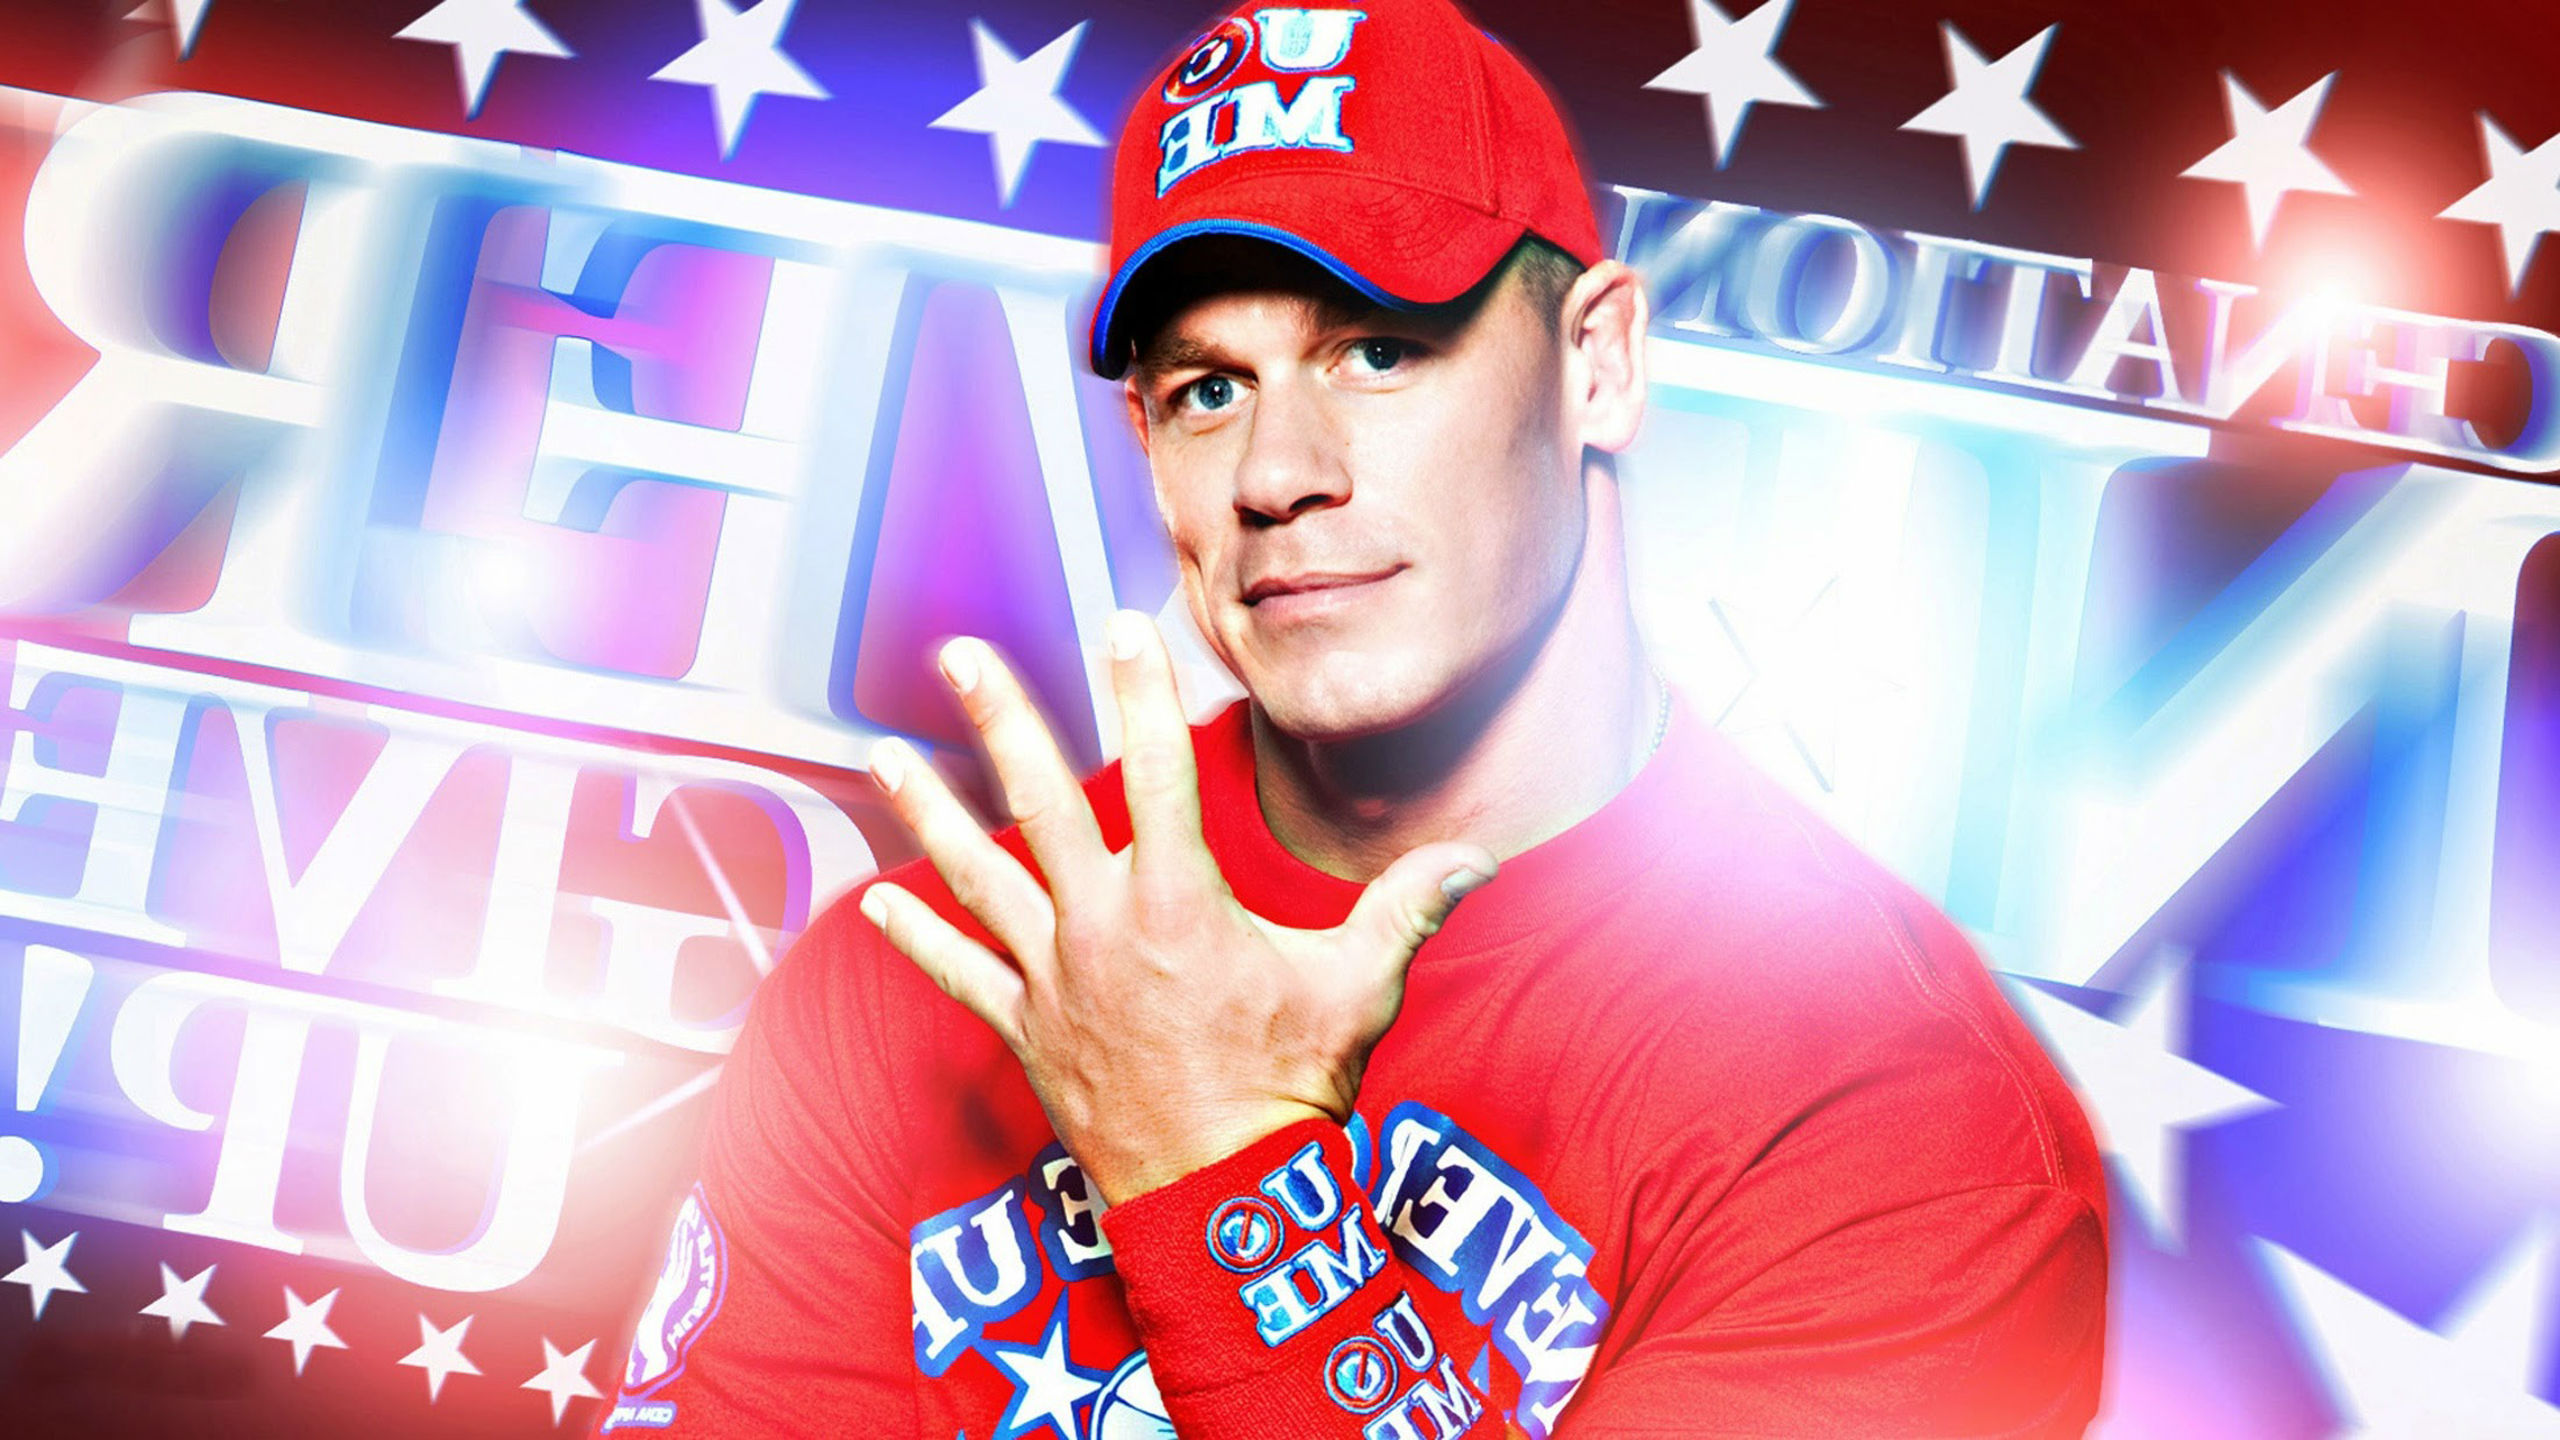 Desktop John Cena HD Wallpapers wallpaperwiki